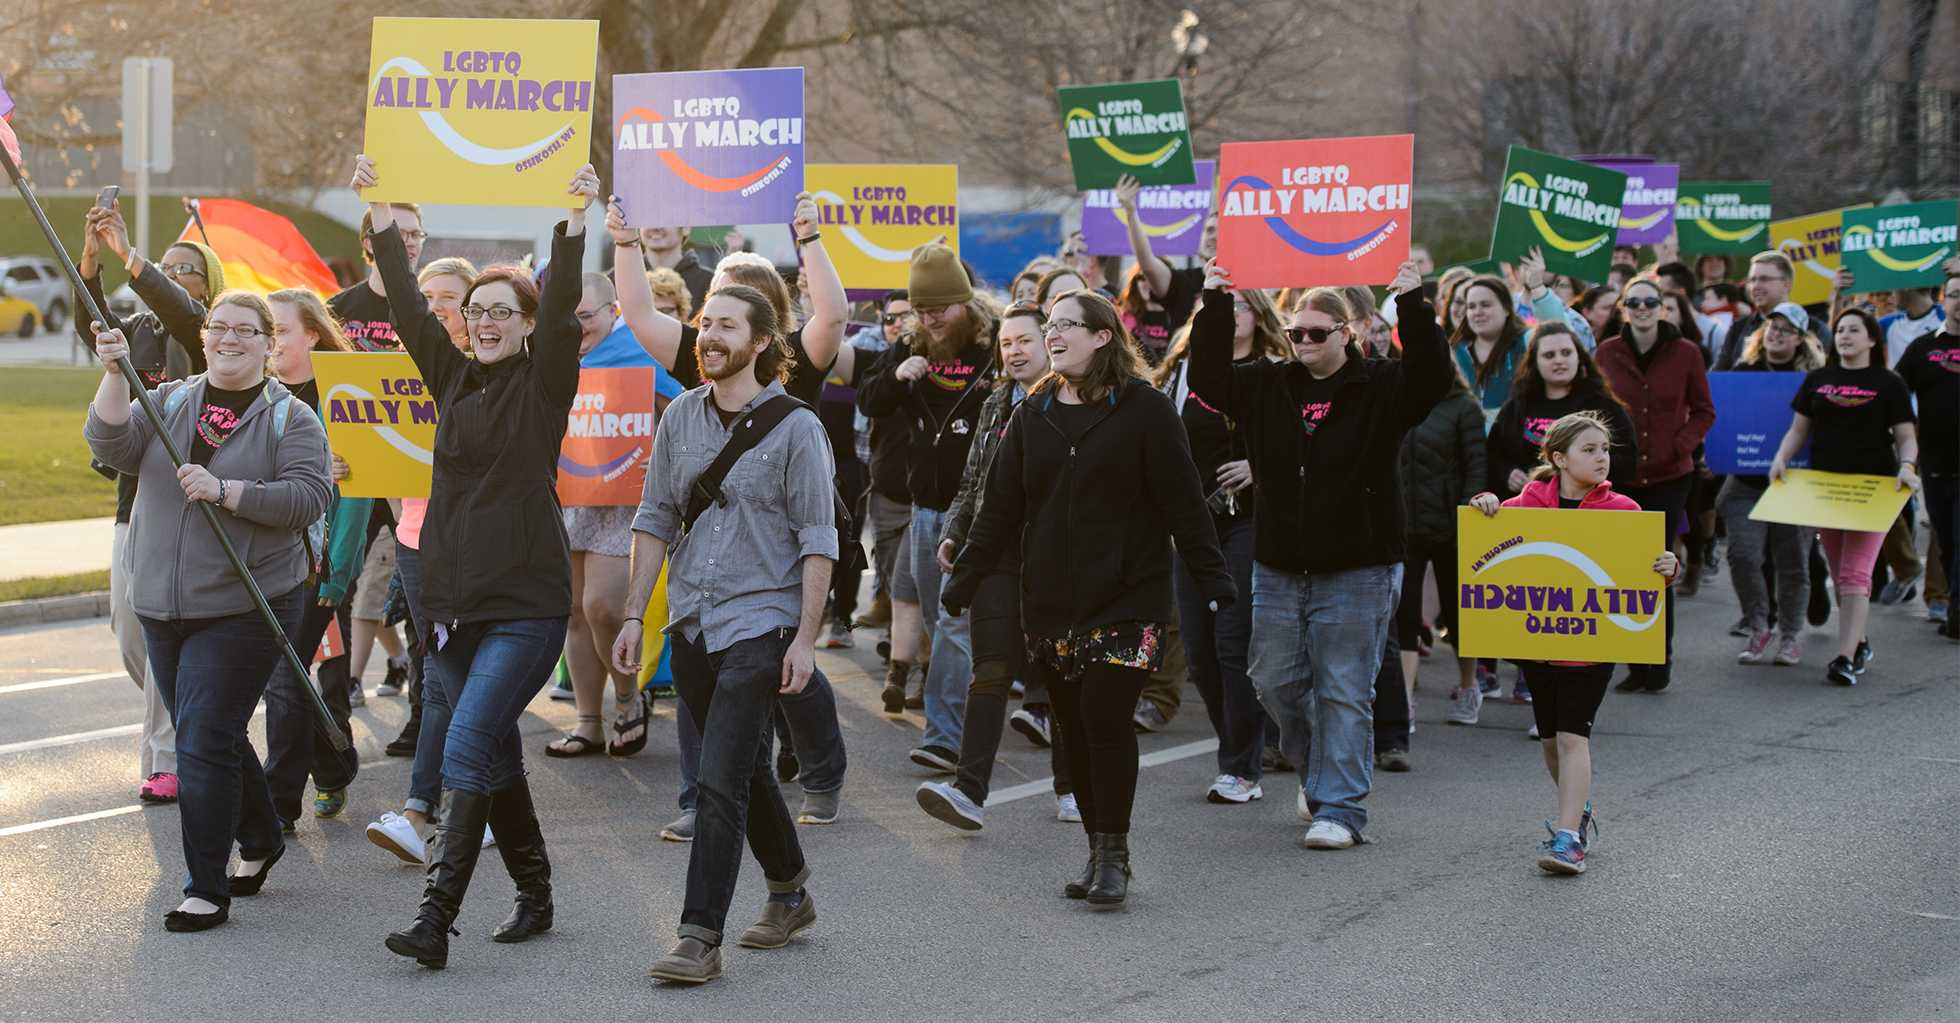 LGBTQ community and allies rally together